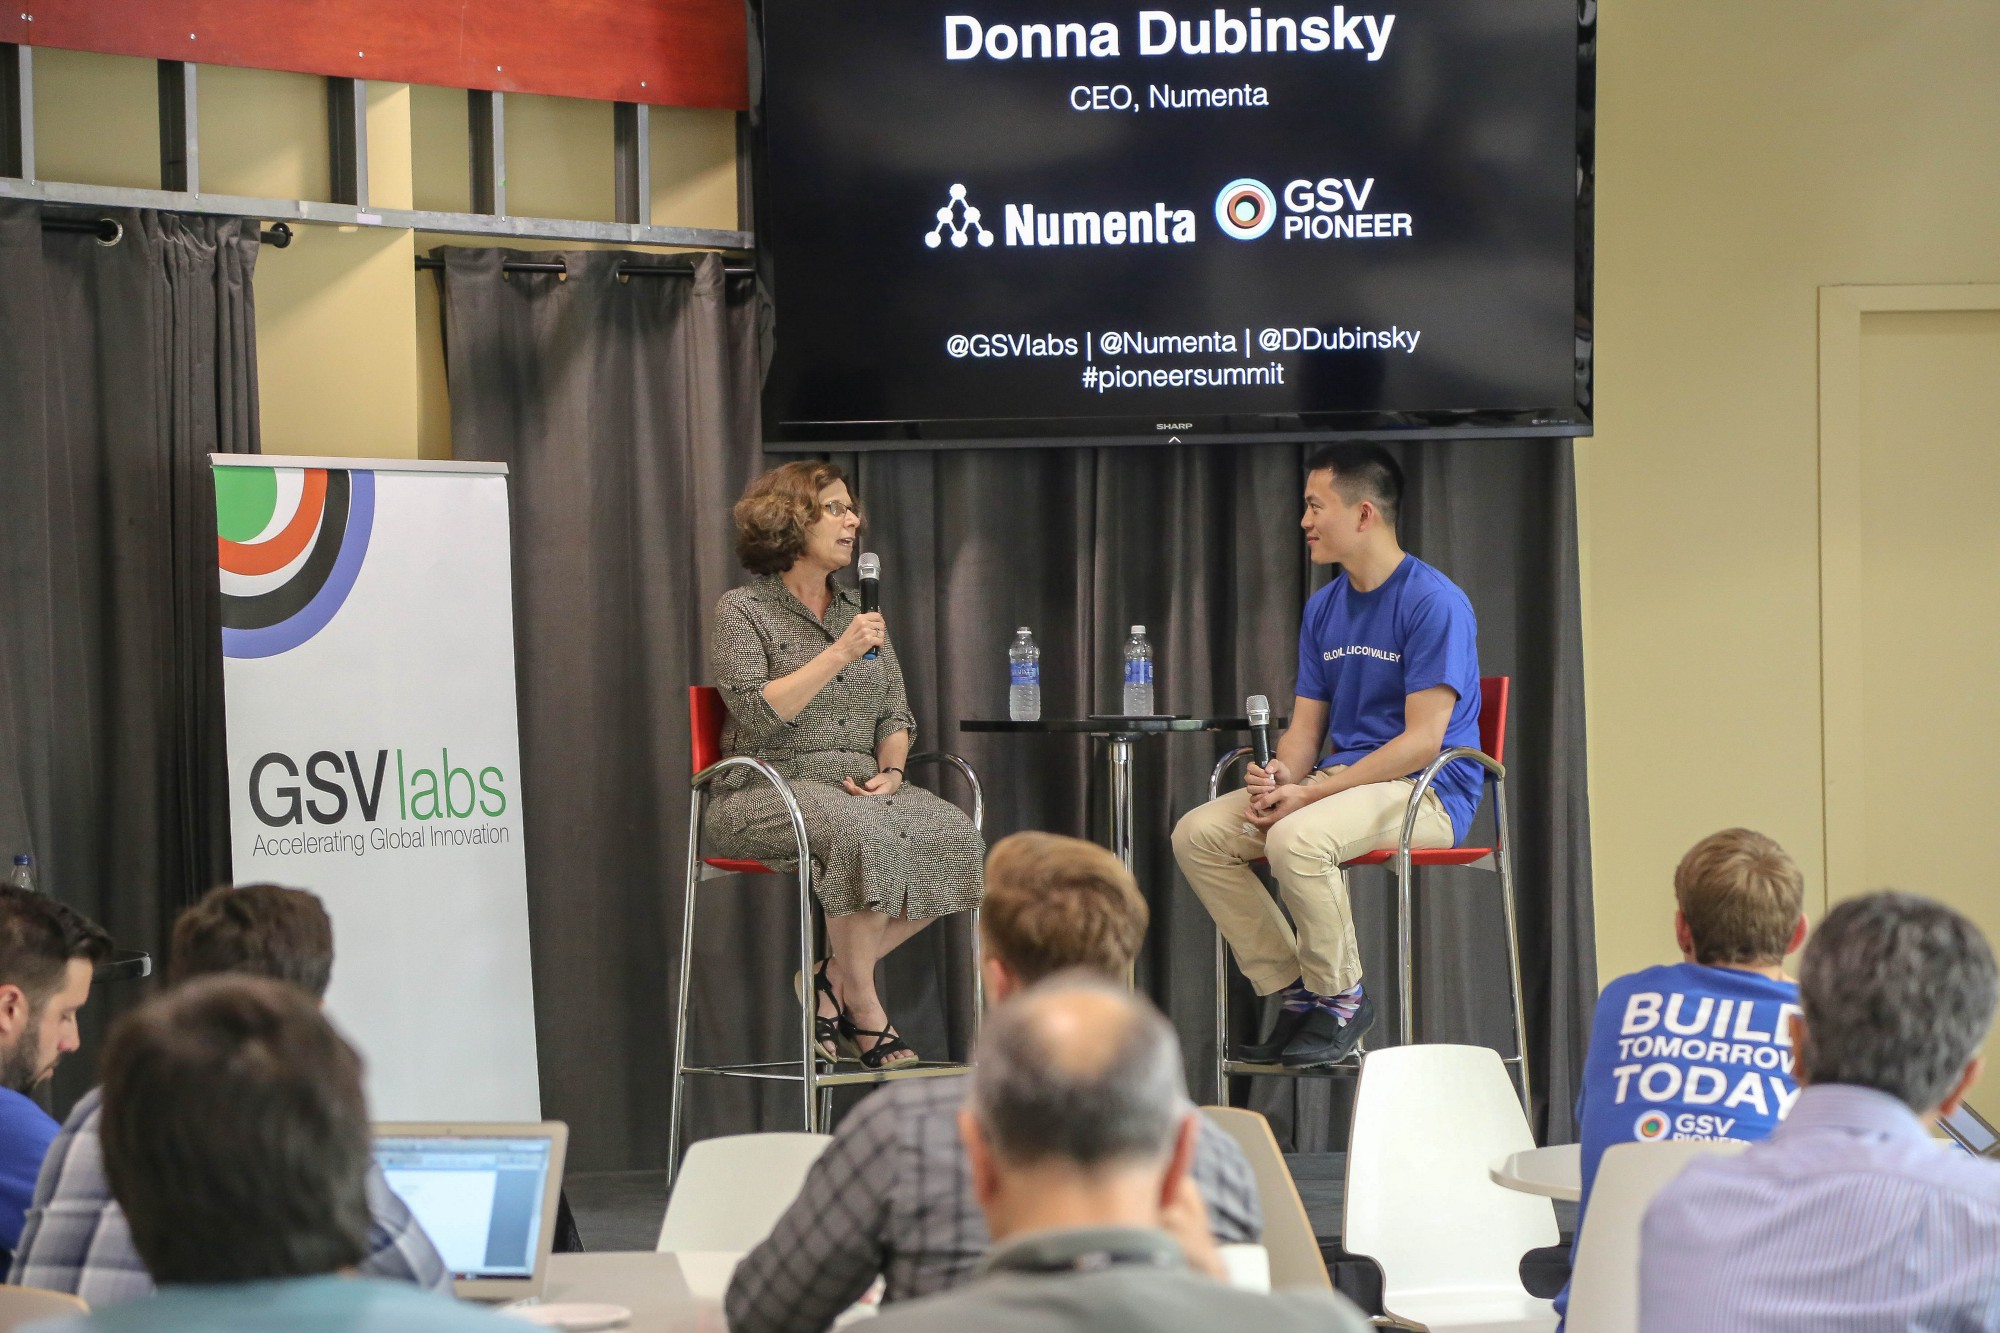 donna dubinsky and apple computer case Presents a question and answer session with donna dubinsky examines what she learned from the painful change situation she experienced and illustrates her coming of age as a senior manager at apple corp.